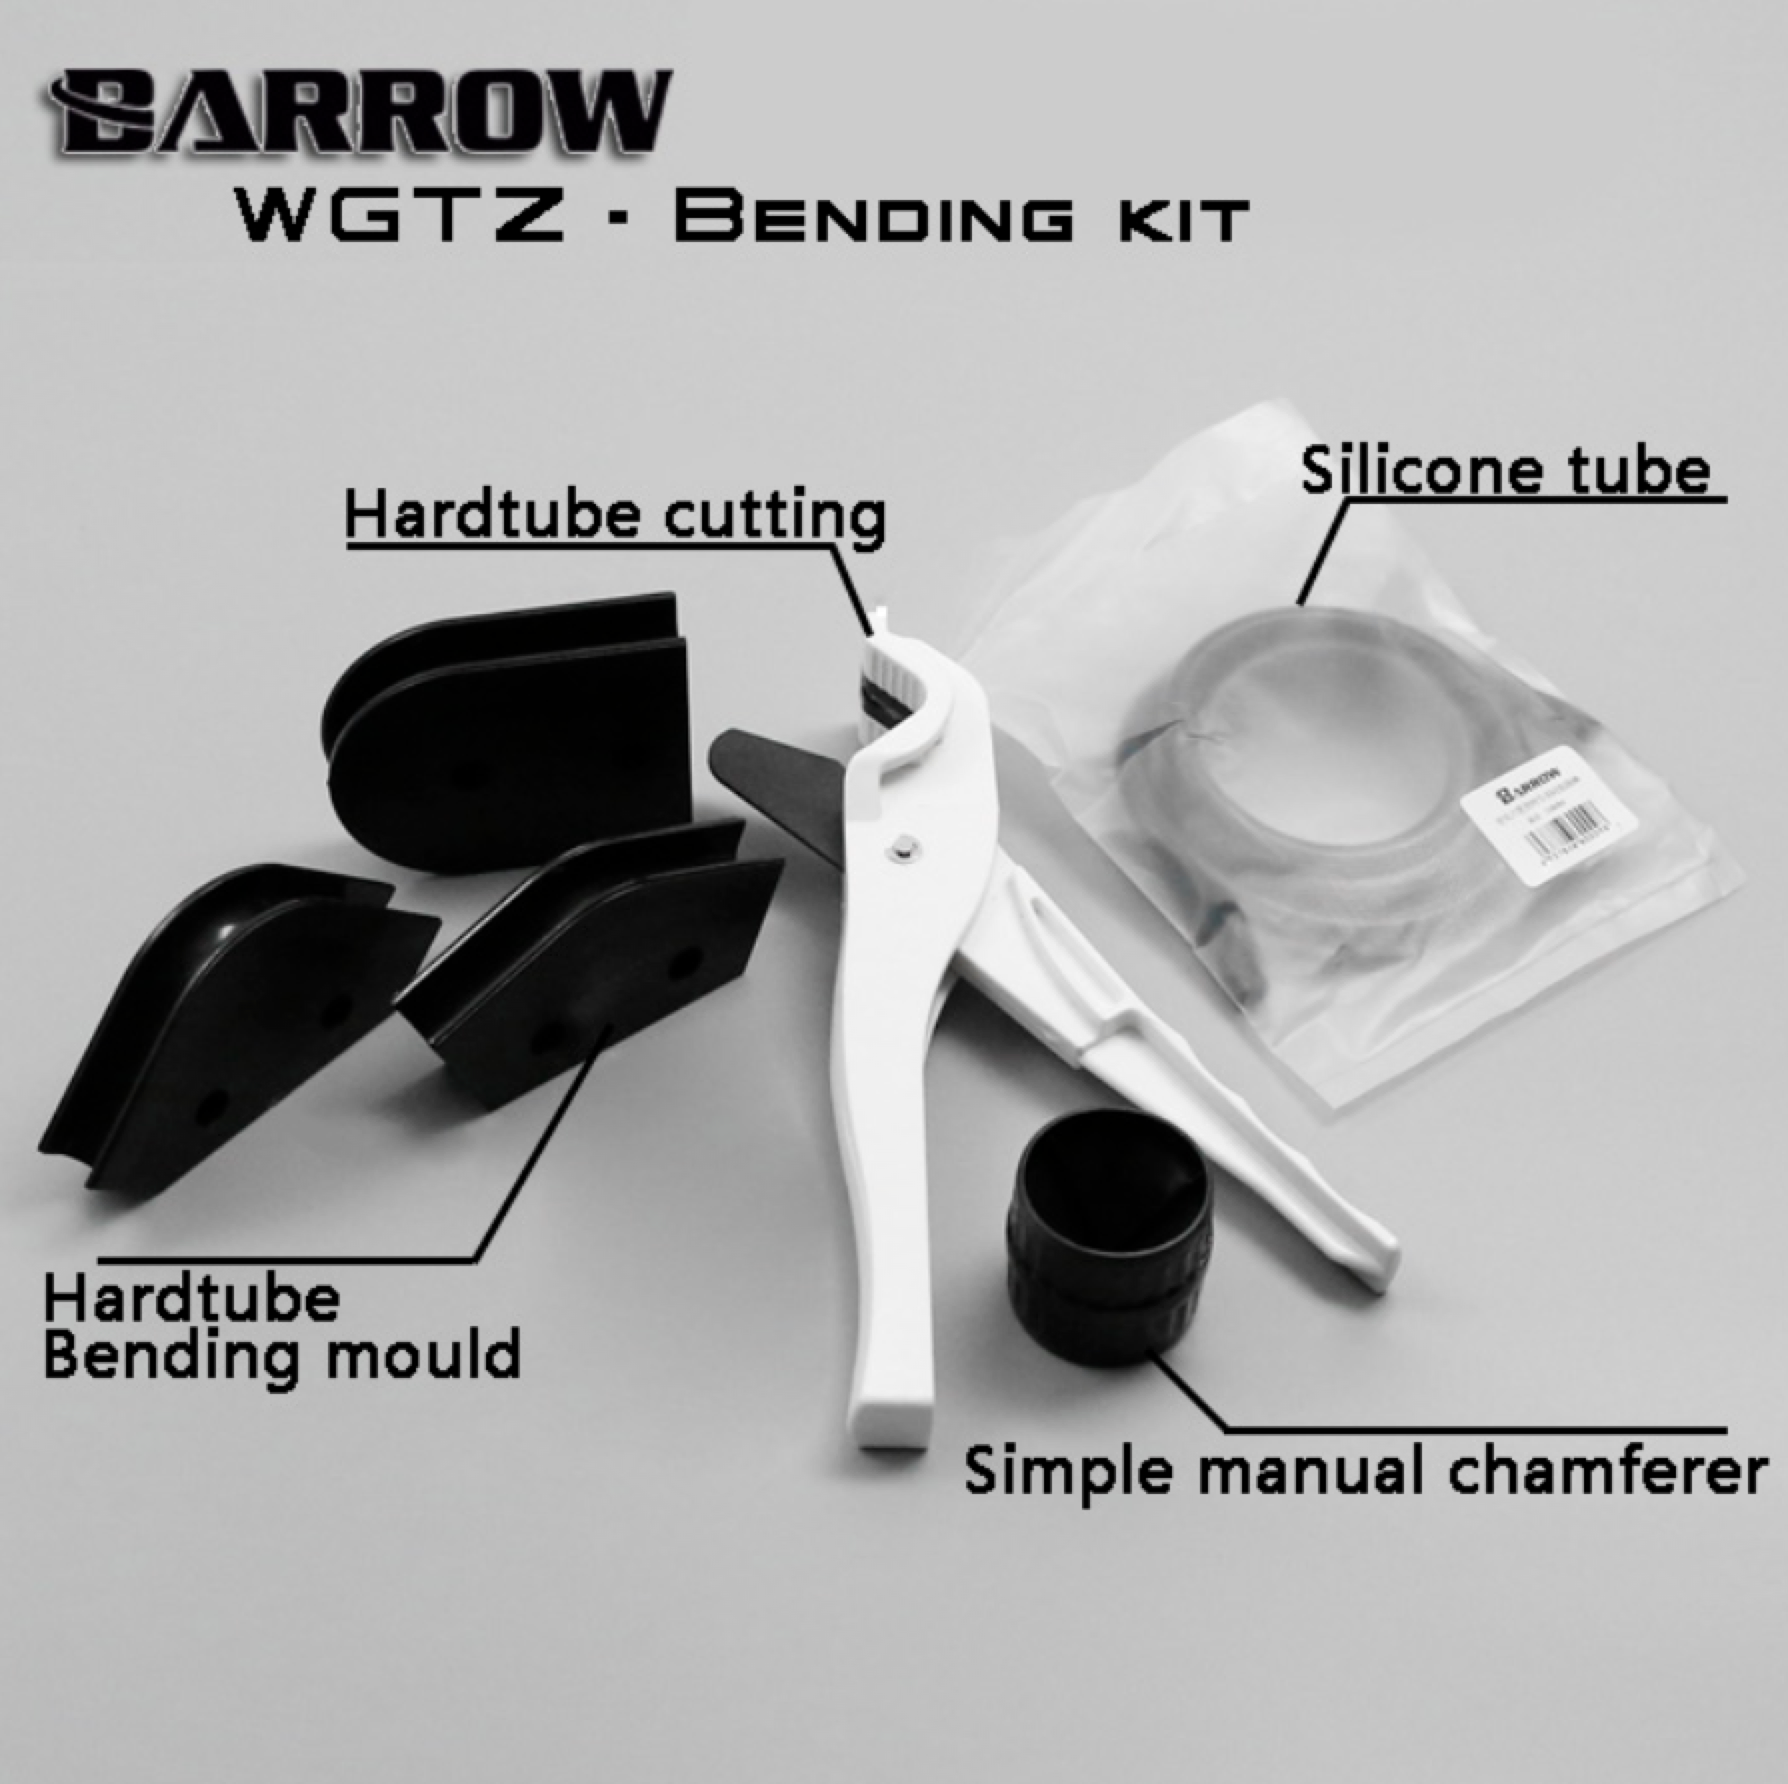 Barrow WGTZ-12/14/16 For OD12 / 14 / 16mm Acrylic / PMMA / PETG Hard Tubes Bending Mold Kit, Easy To Use